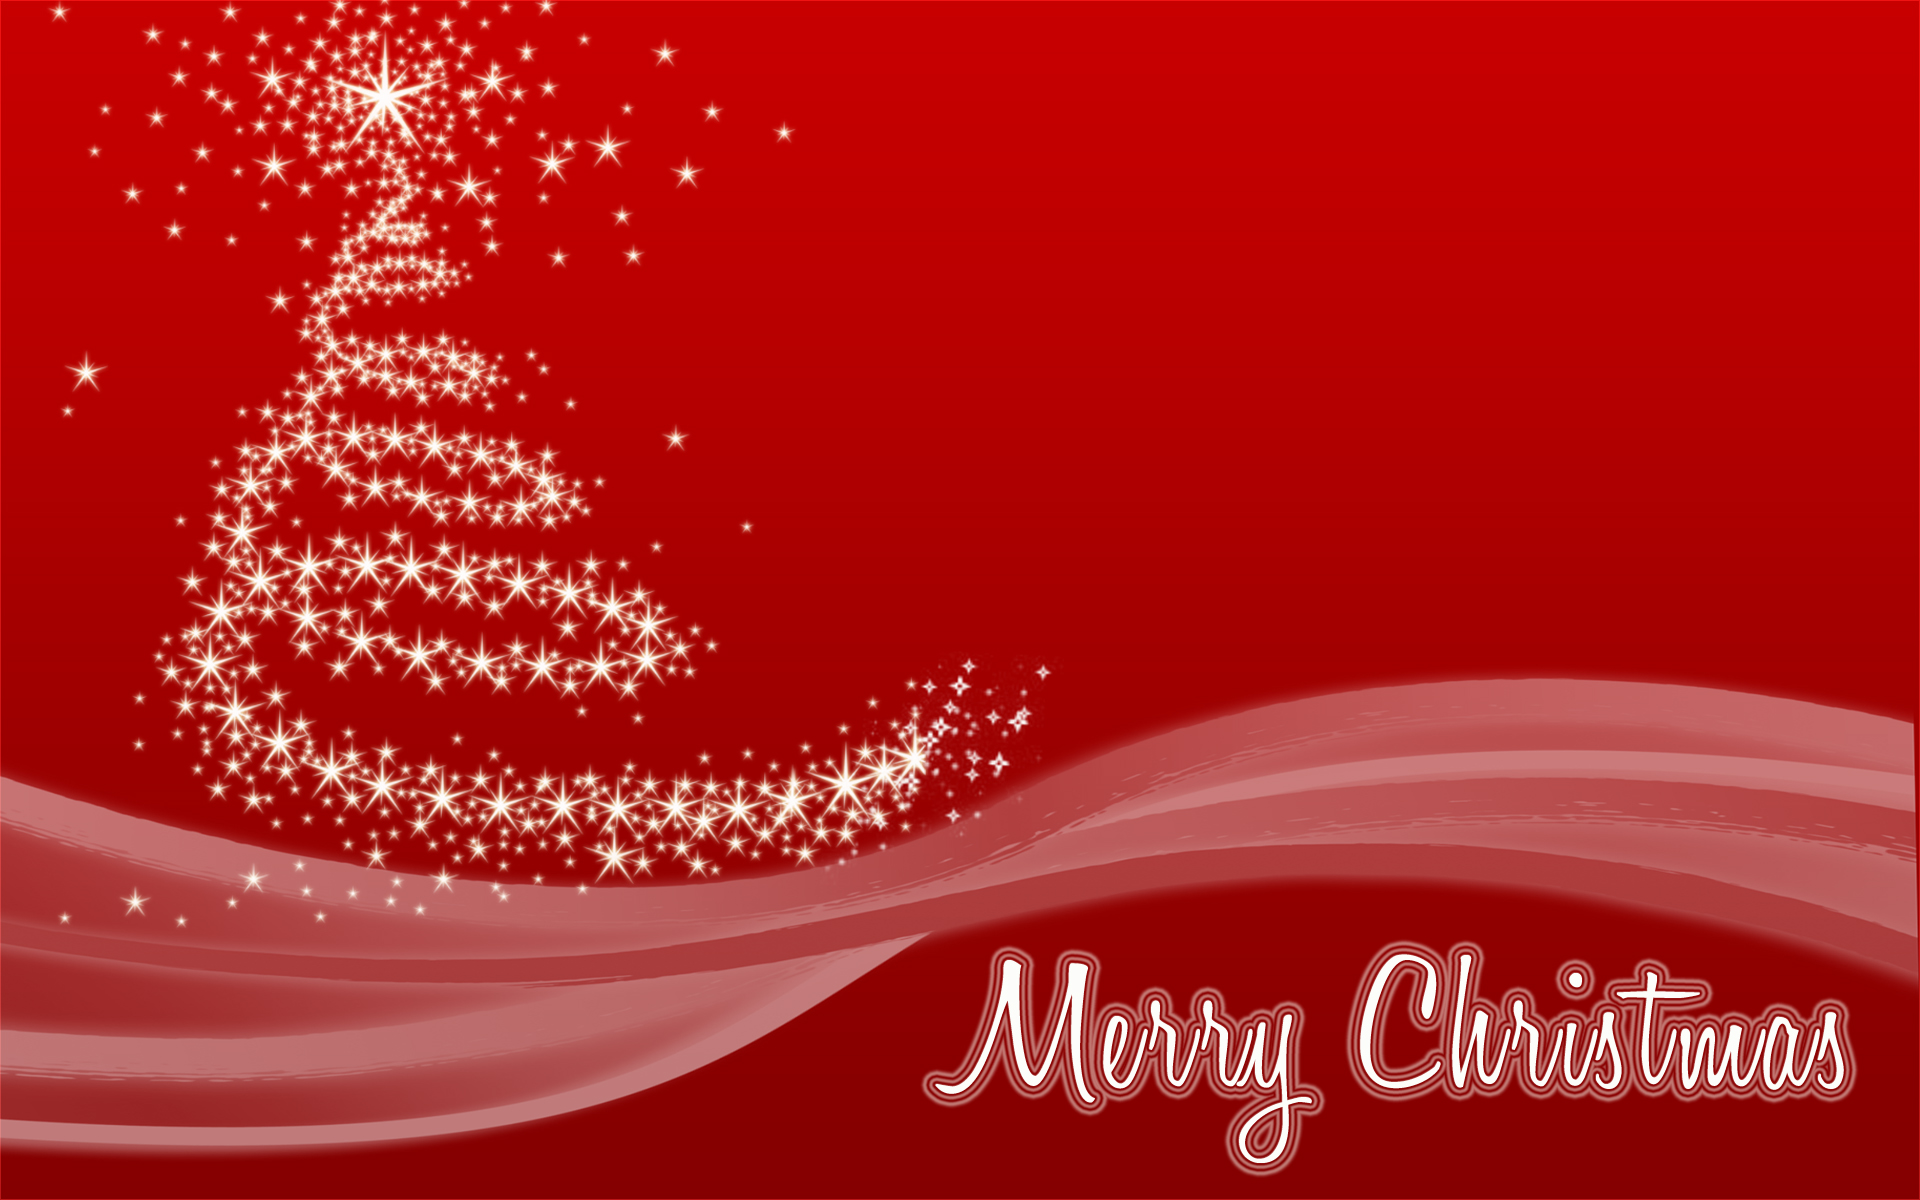 Christmas wallpapers background download free